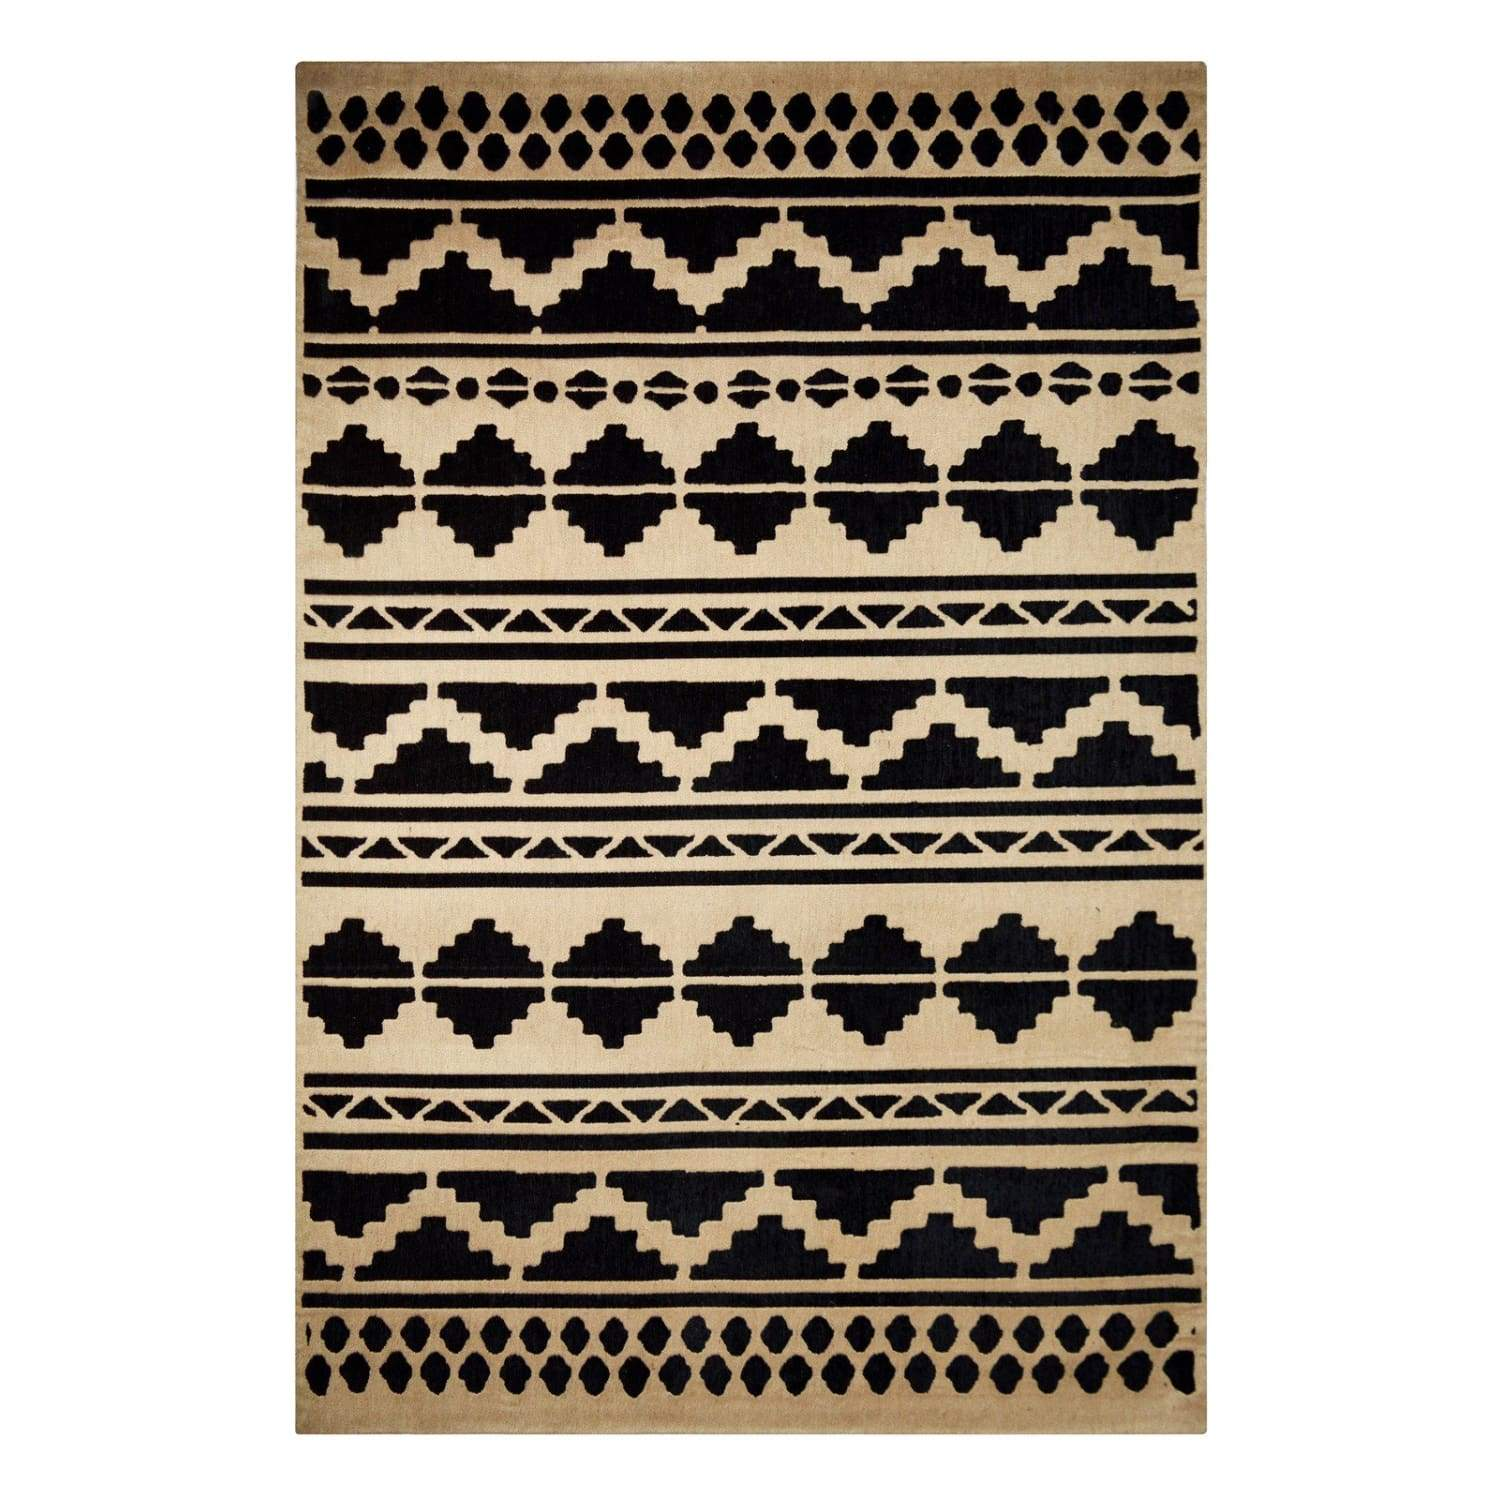 Tapis Traditionnel - Scandy 310 Noir - Naturel